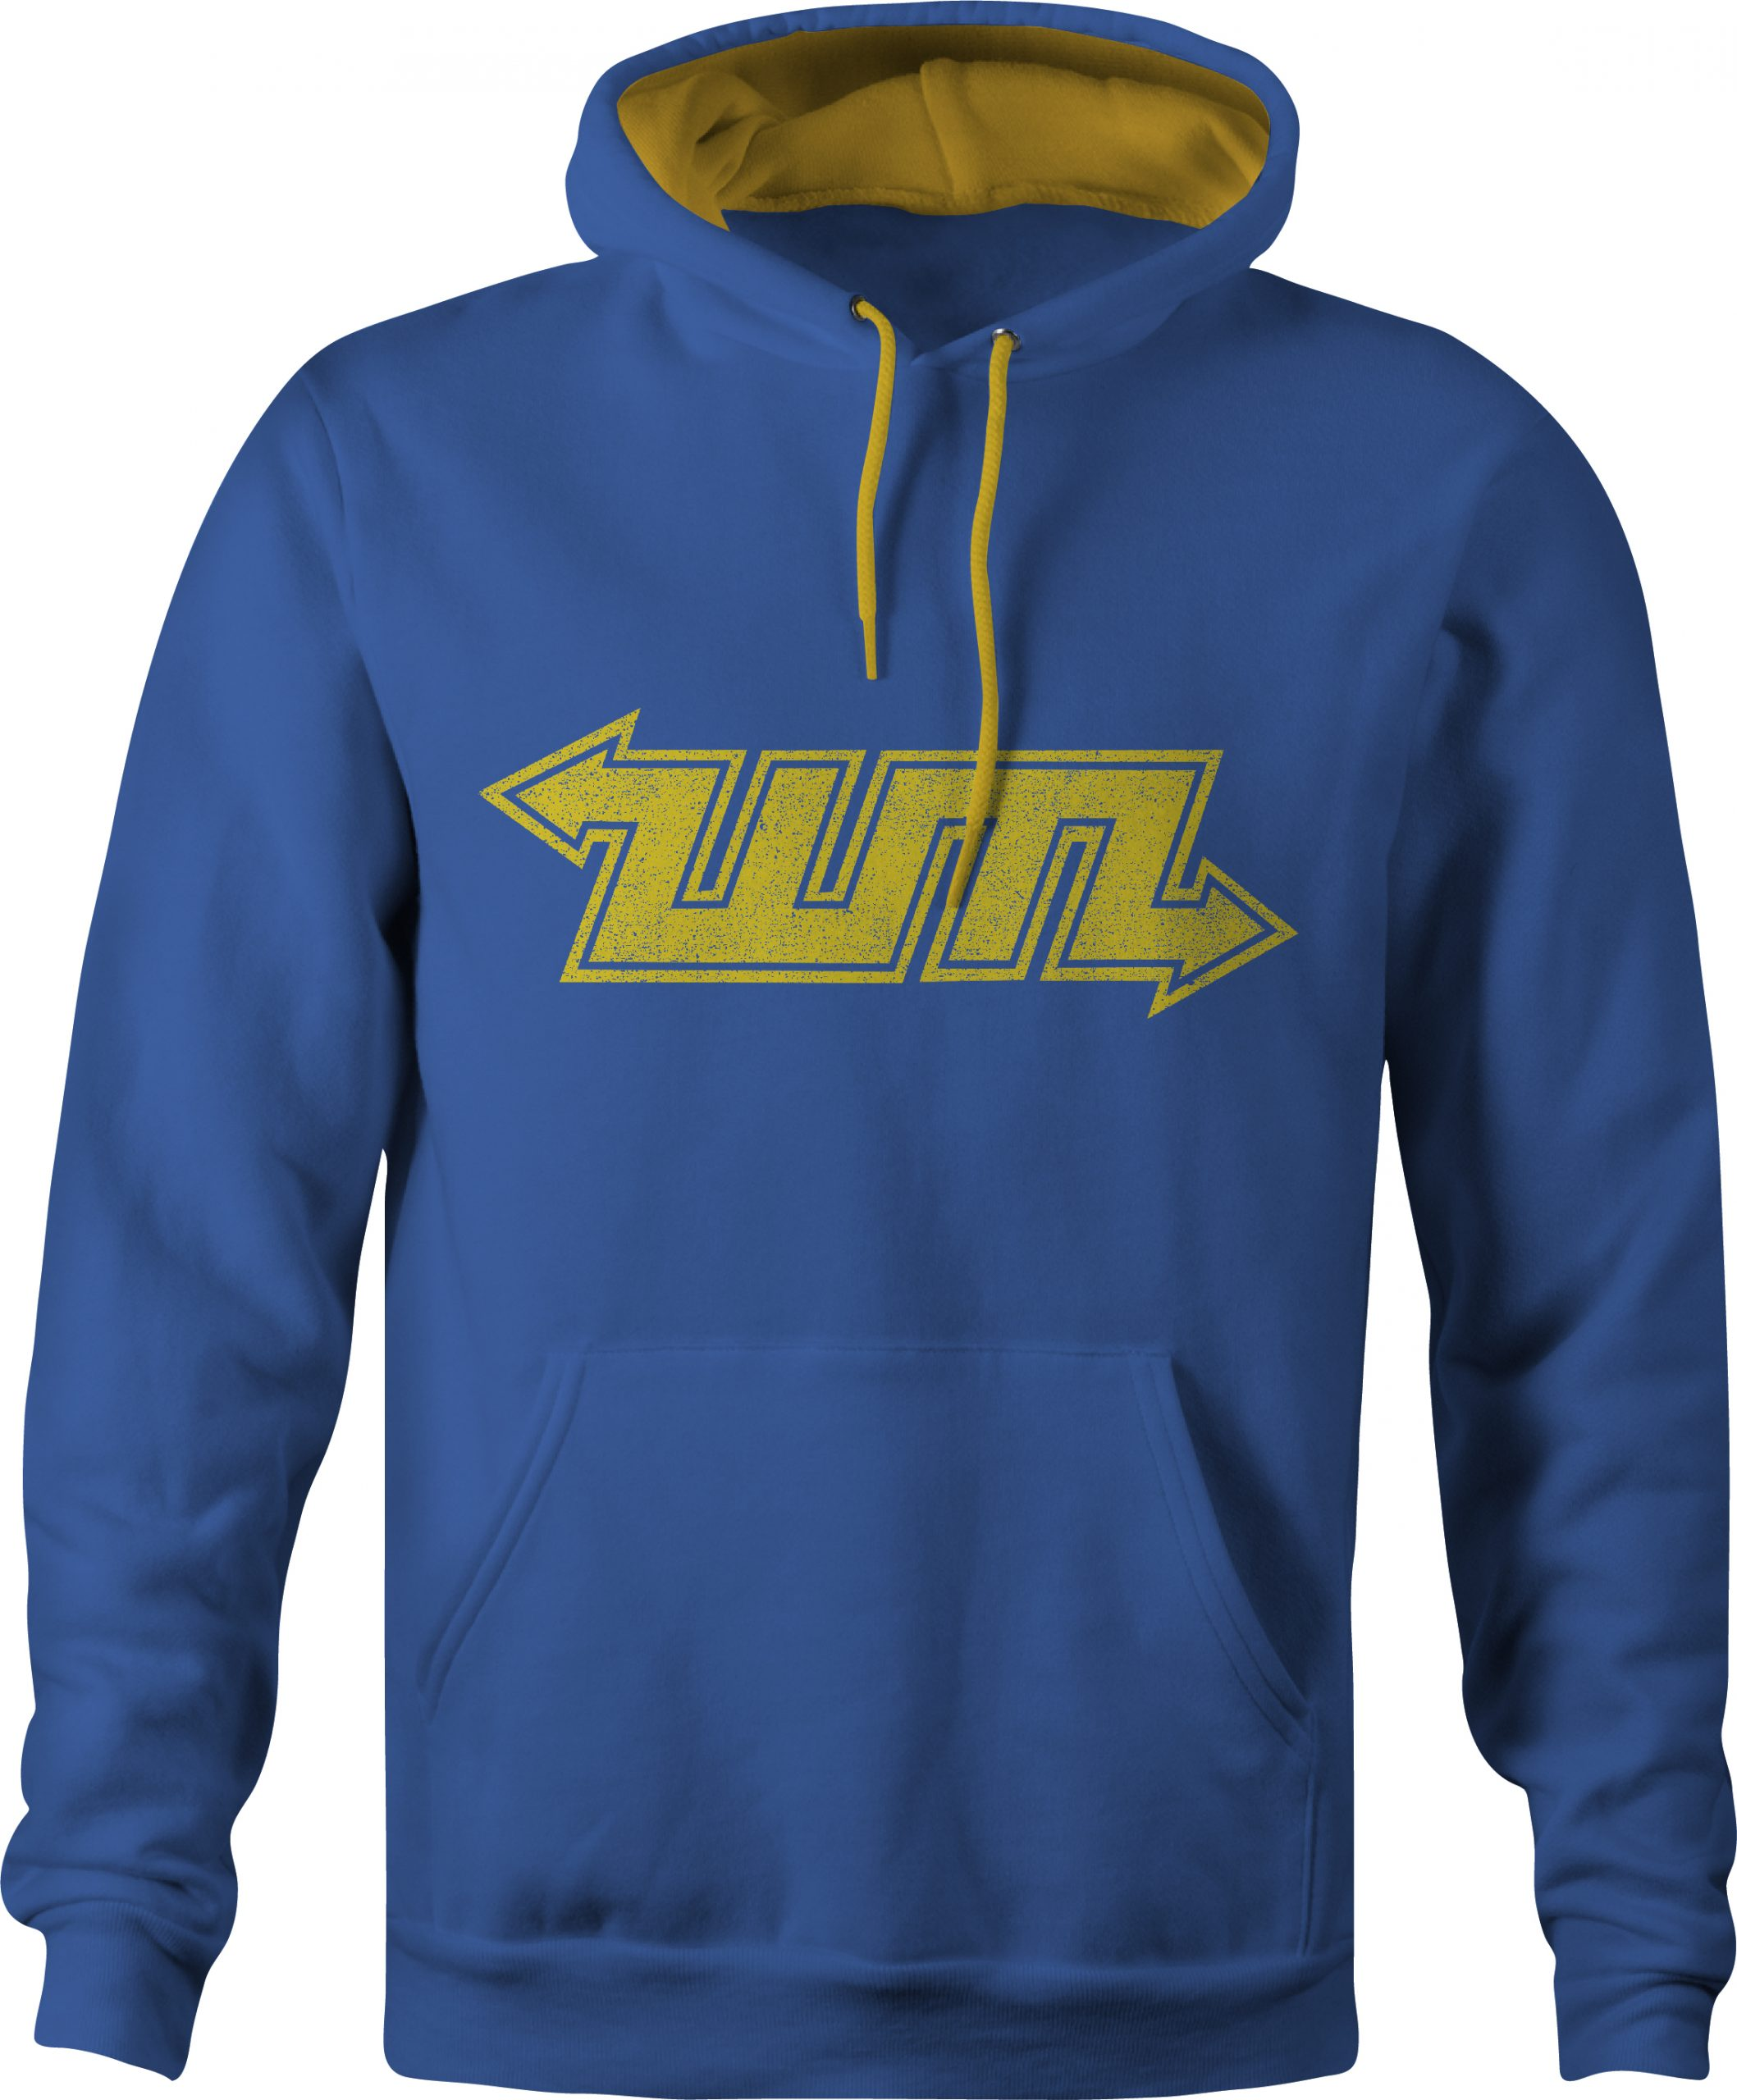 WMPTE buses contrast varsity hoody in blue and yellow